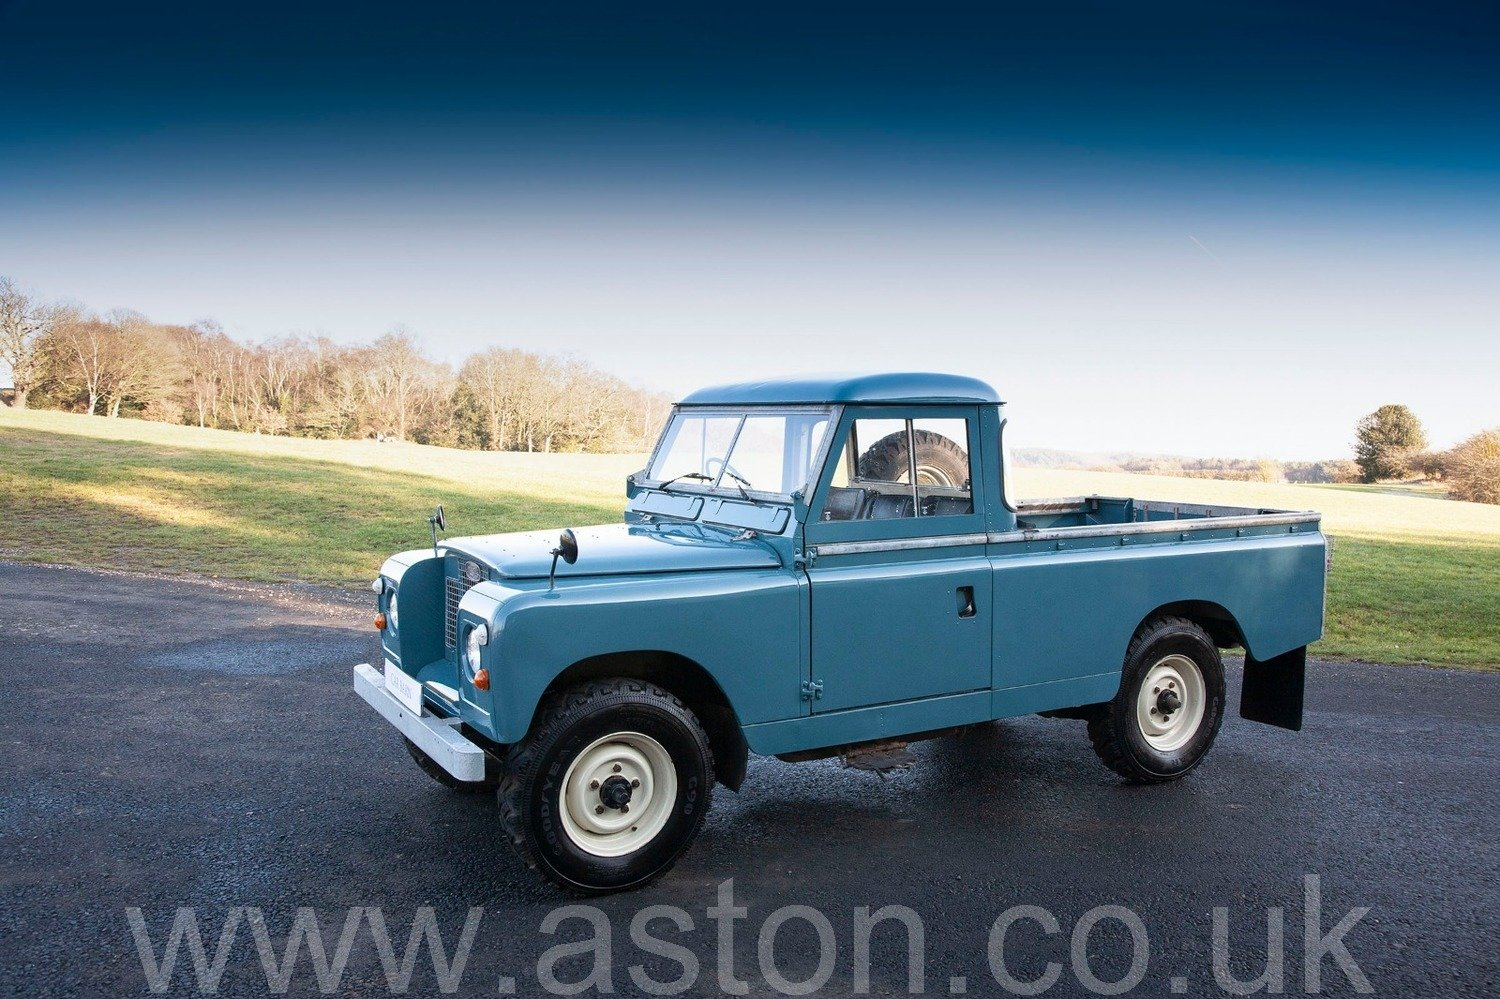 1969 Land Rover Series 2A - Ex Raf SOLD (picture 2 of 6)